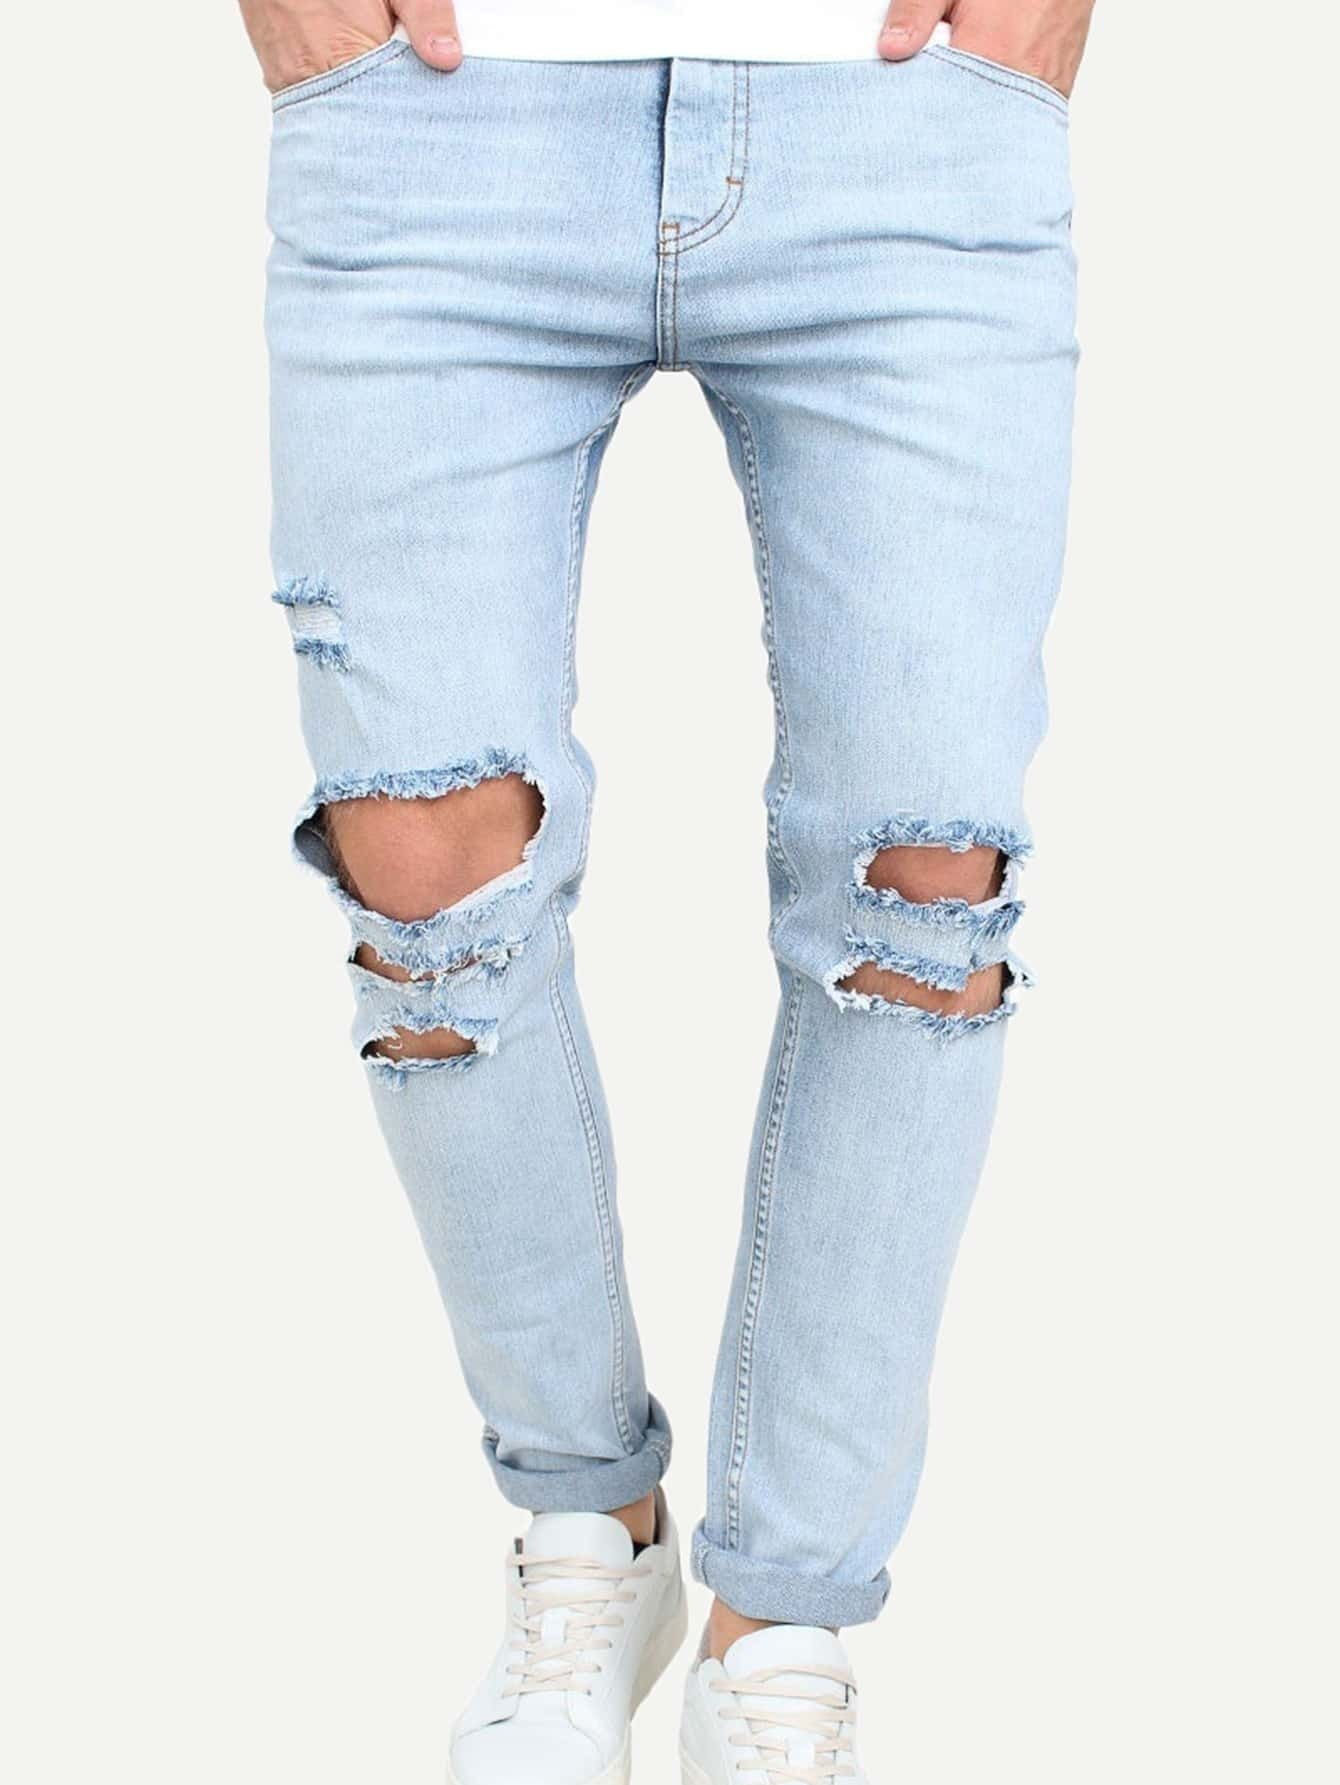 Men Destroyed Rolled Hem Jeans nostalgia retro design fashion men jeans european stylish dimensional knee frayed hole destroyed ripped jeans men biker jeans